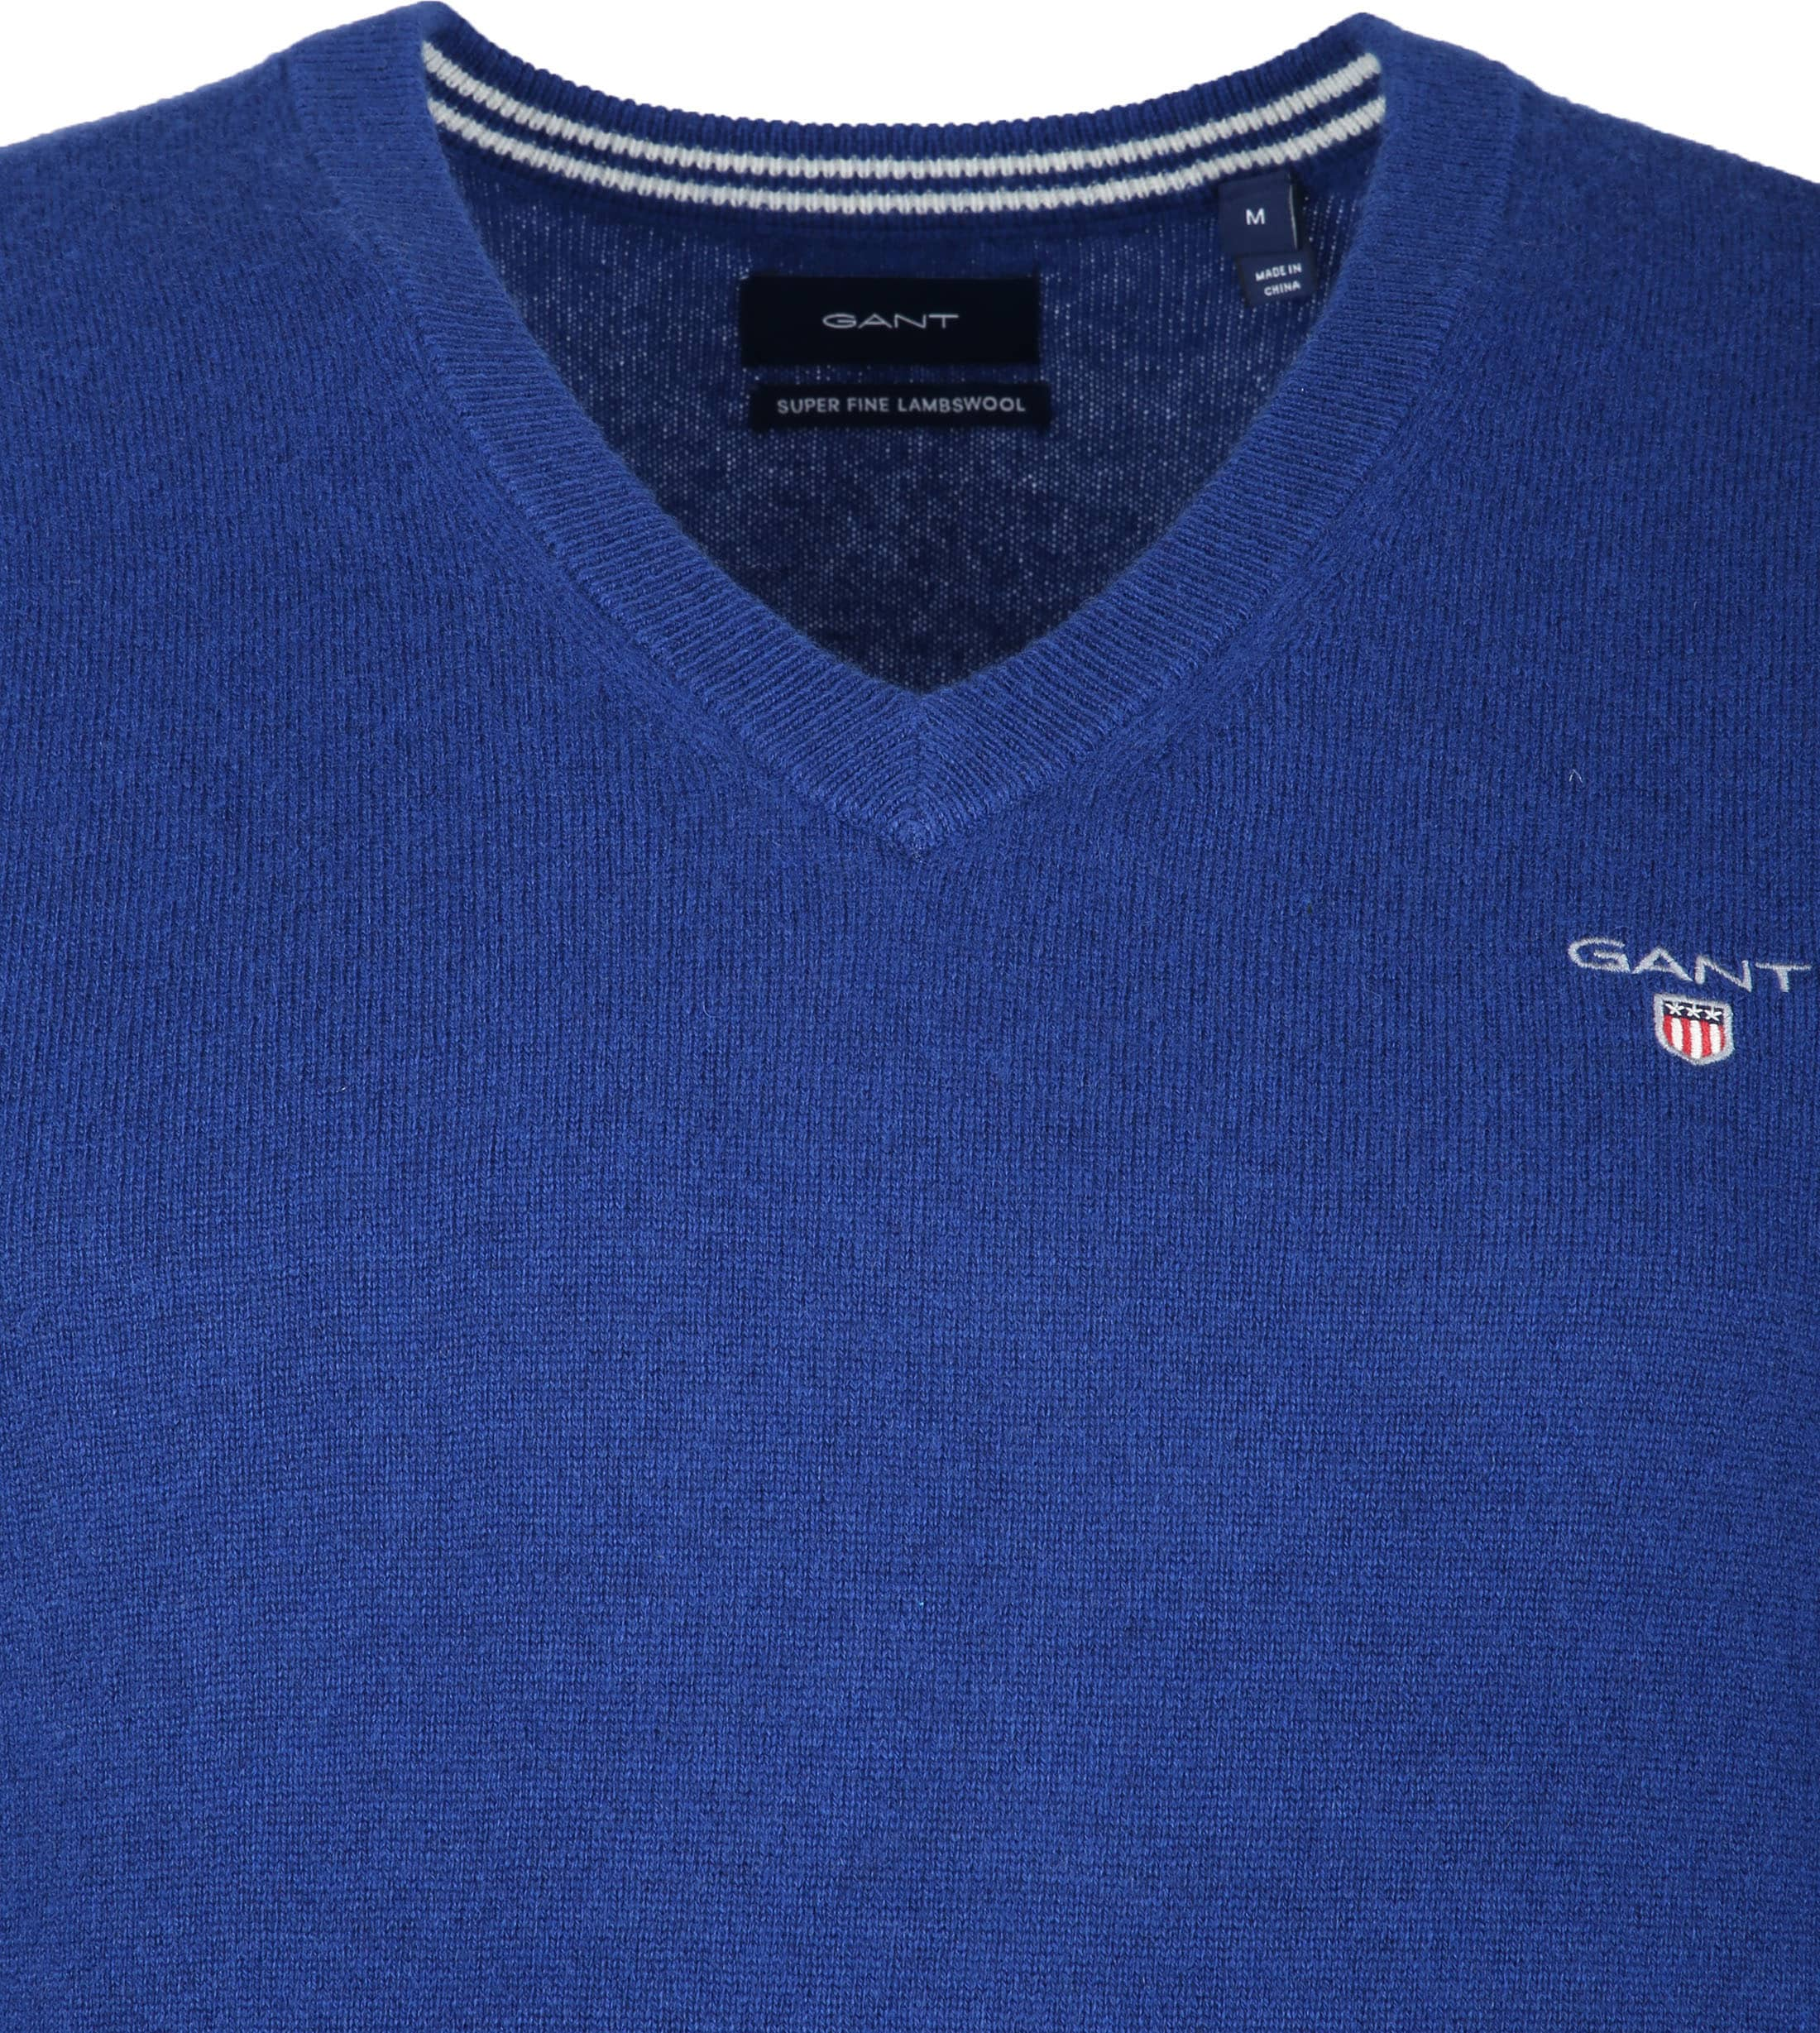 Gant Lambswool Pullover Blue foto 1